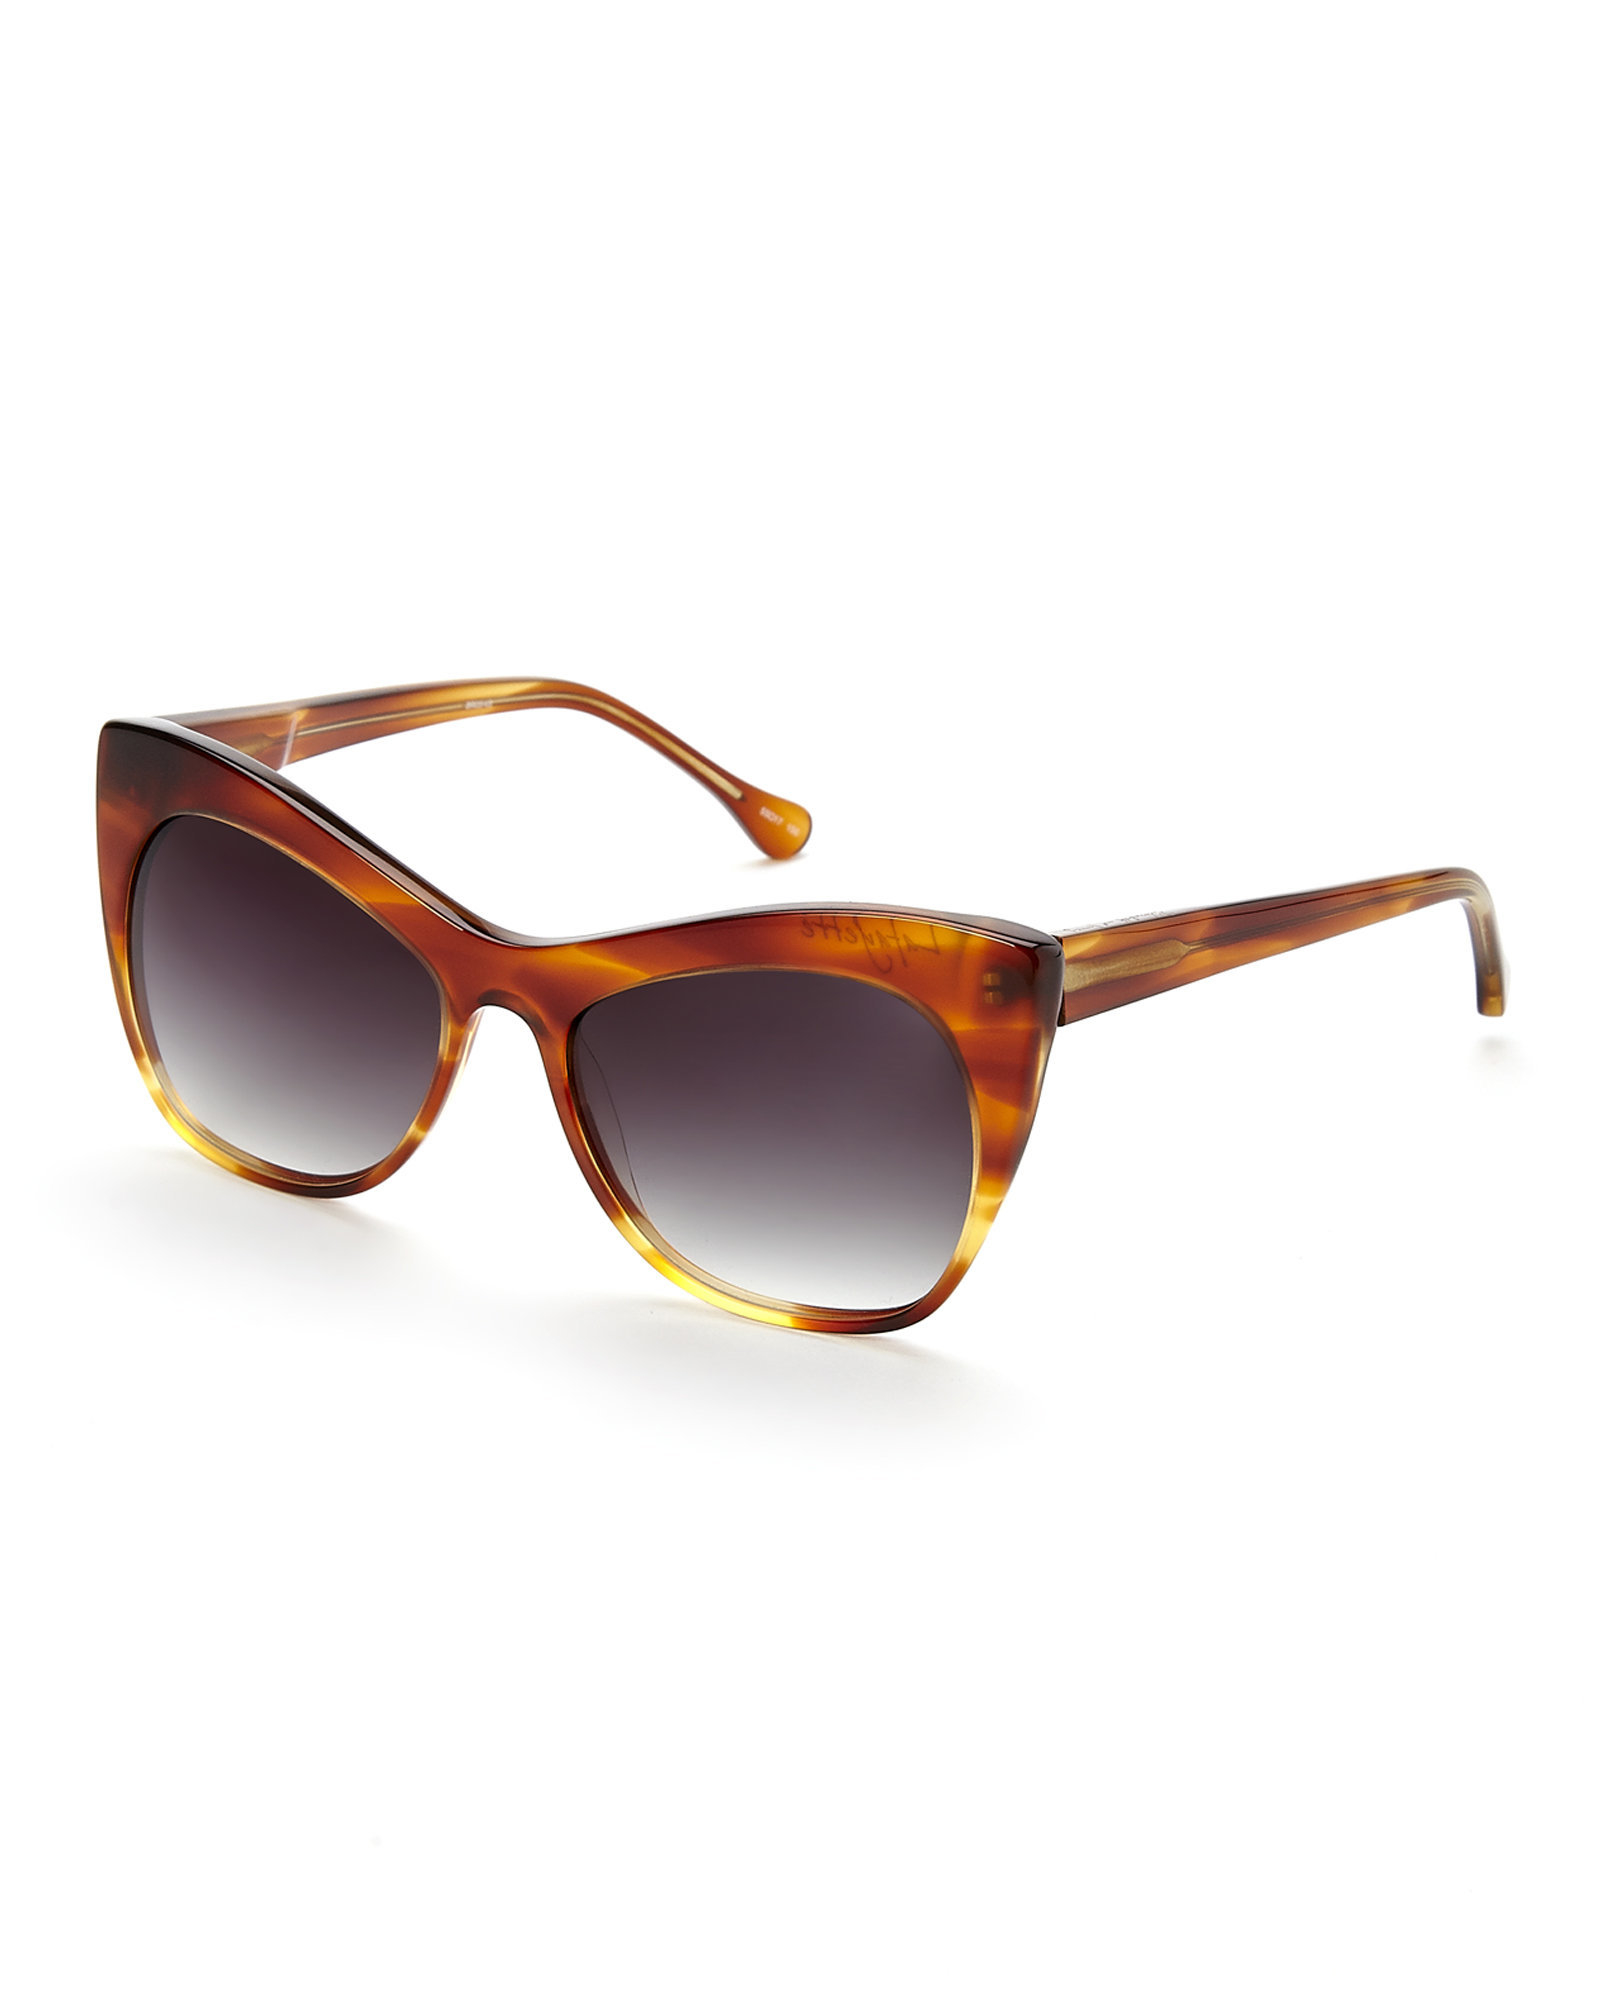 505402566e Lyst - Elizabeth and James Brown Lafayette Cat Eye Sunglasses in Brown